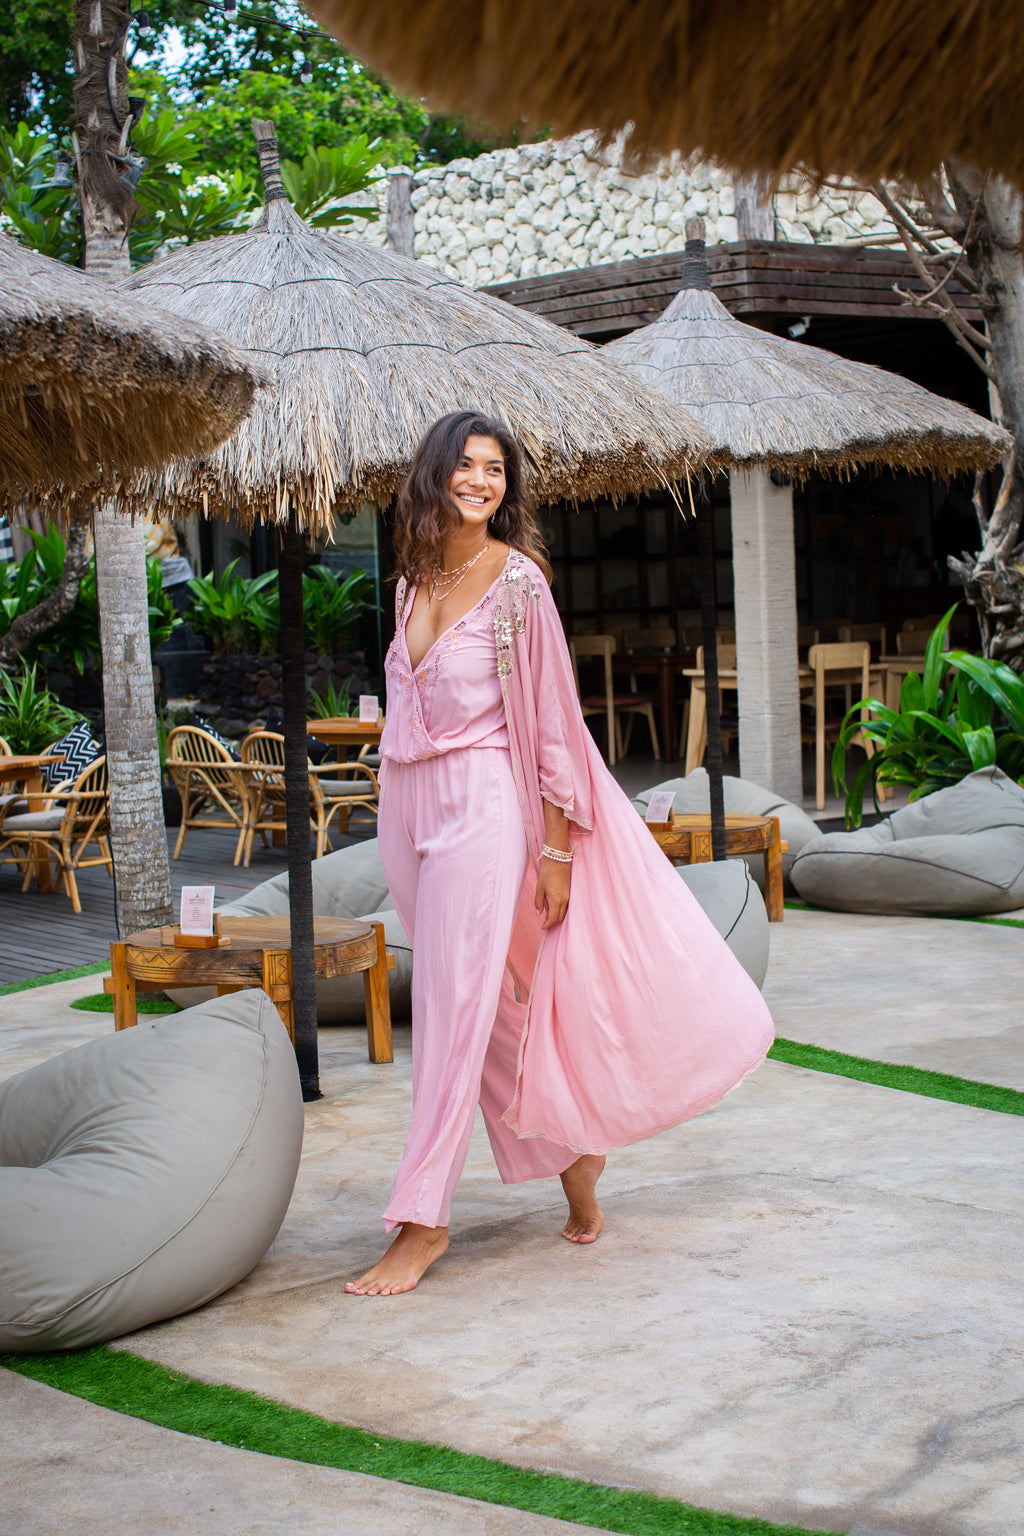 Bali Queen, Coco Rose, Resort Wear, Pool Wear, Bathing suit coverup, summer, summer style, boutique, bali, travel, boho style, travel, Audrey kimono.